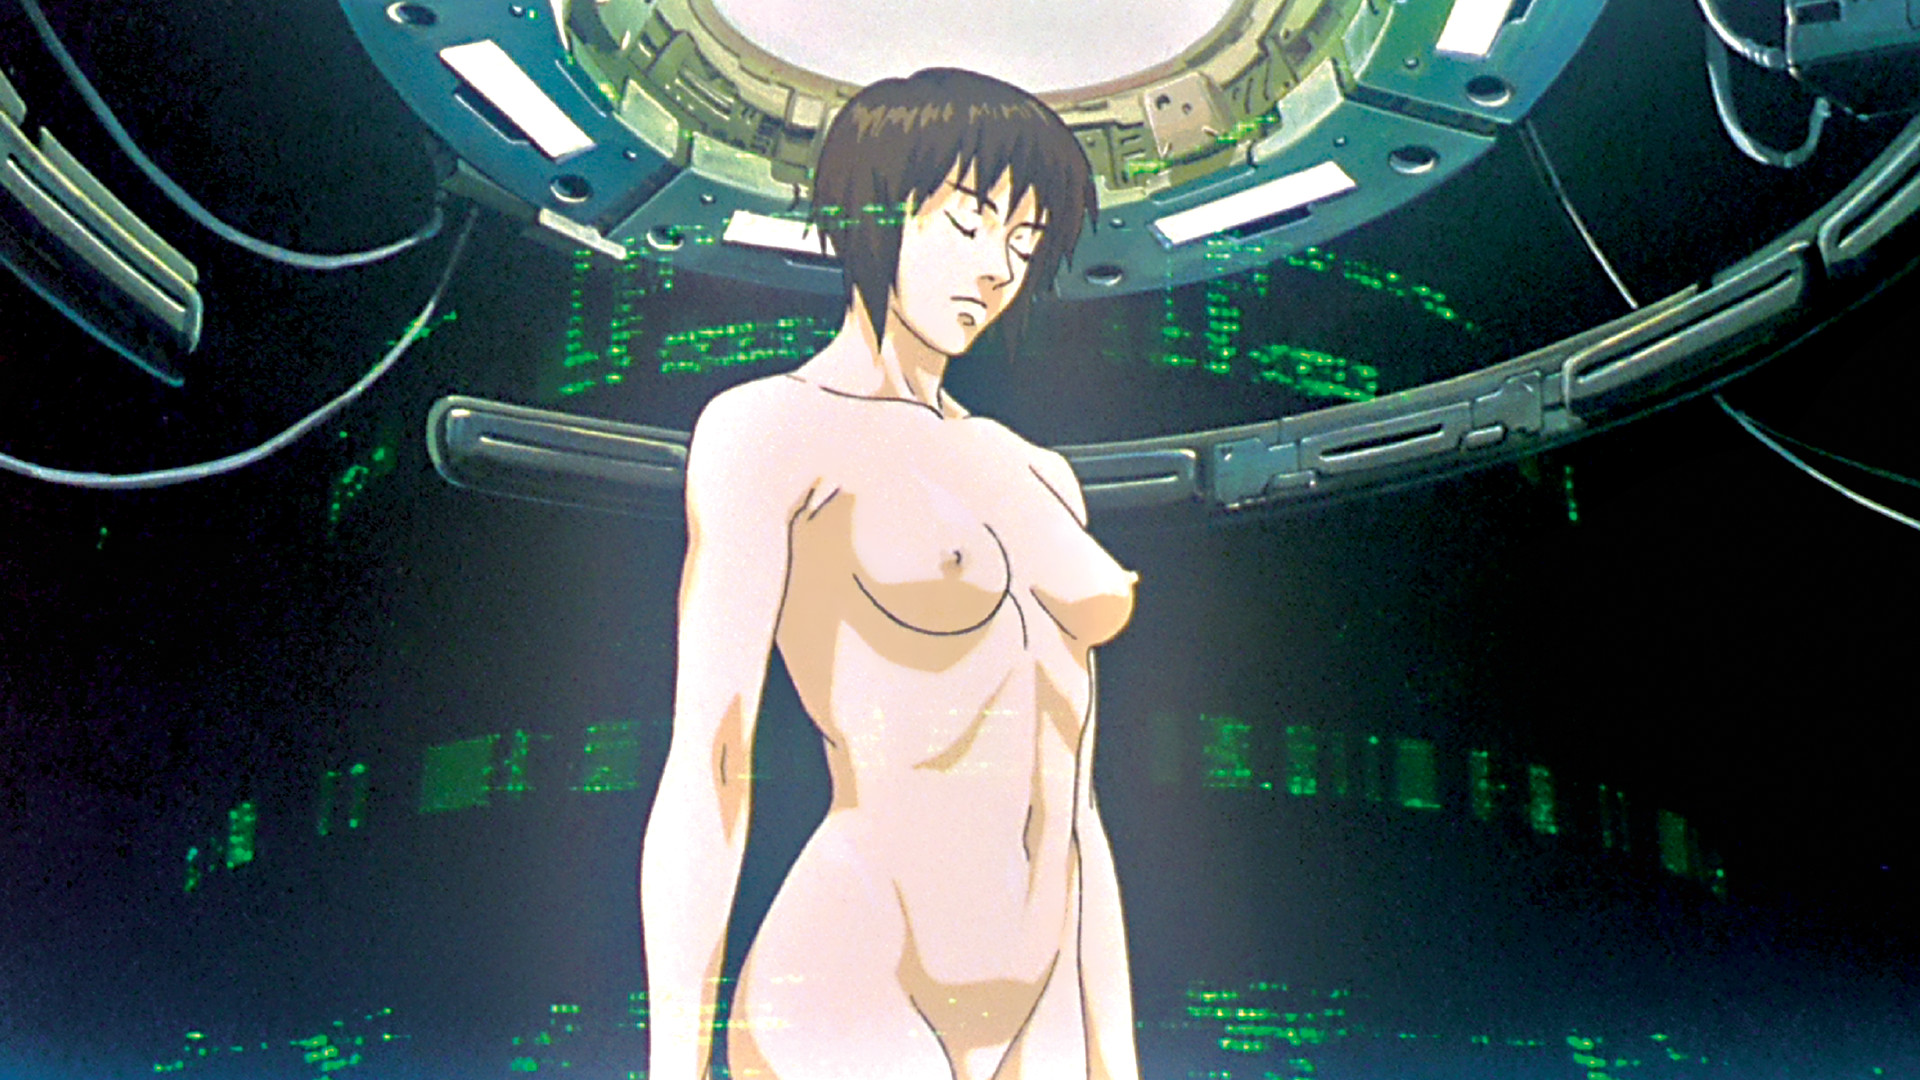 Ghost in the shell anime nude